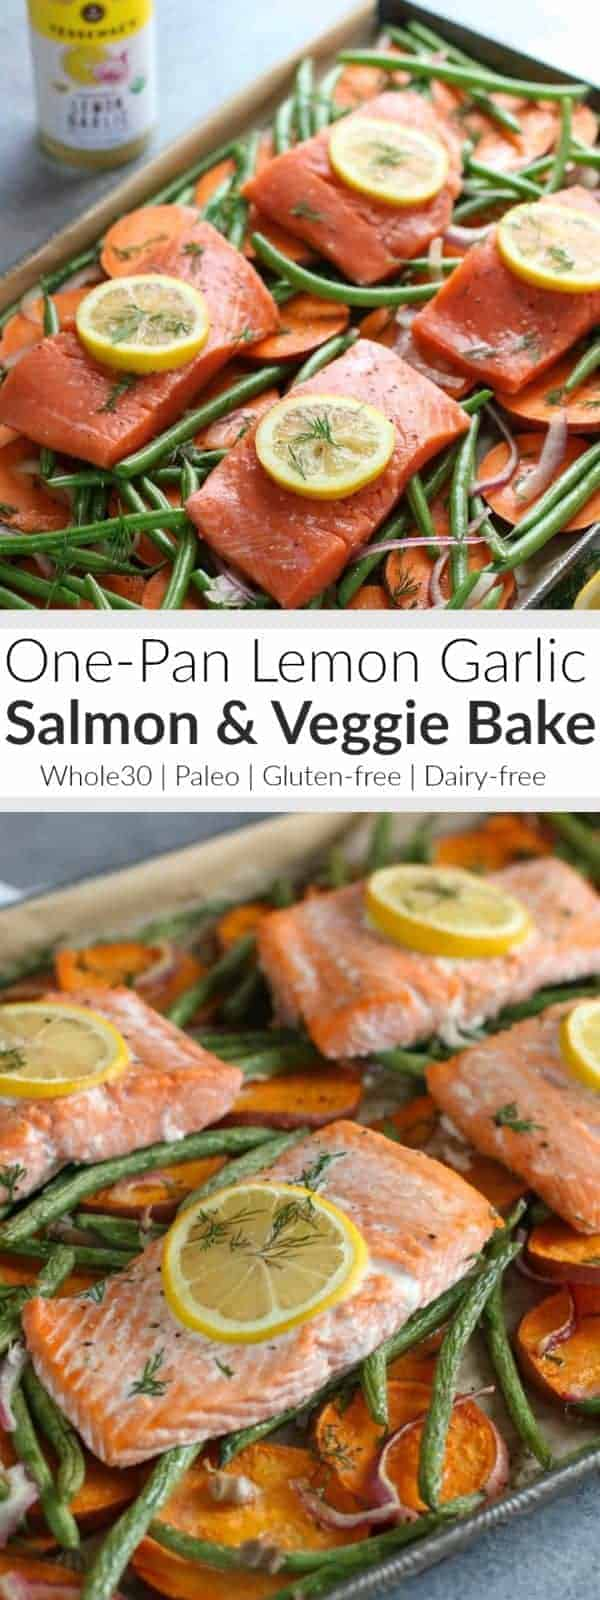 Pinterest image for One Pan Salmon & Veggie Bake